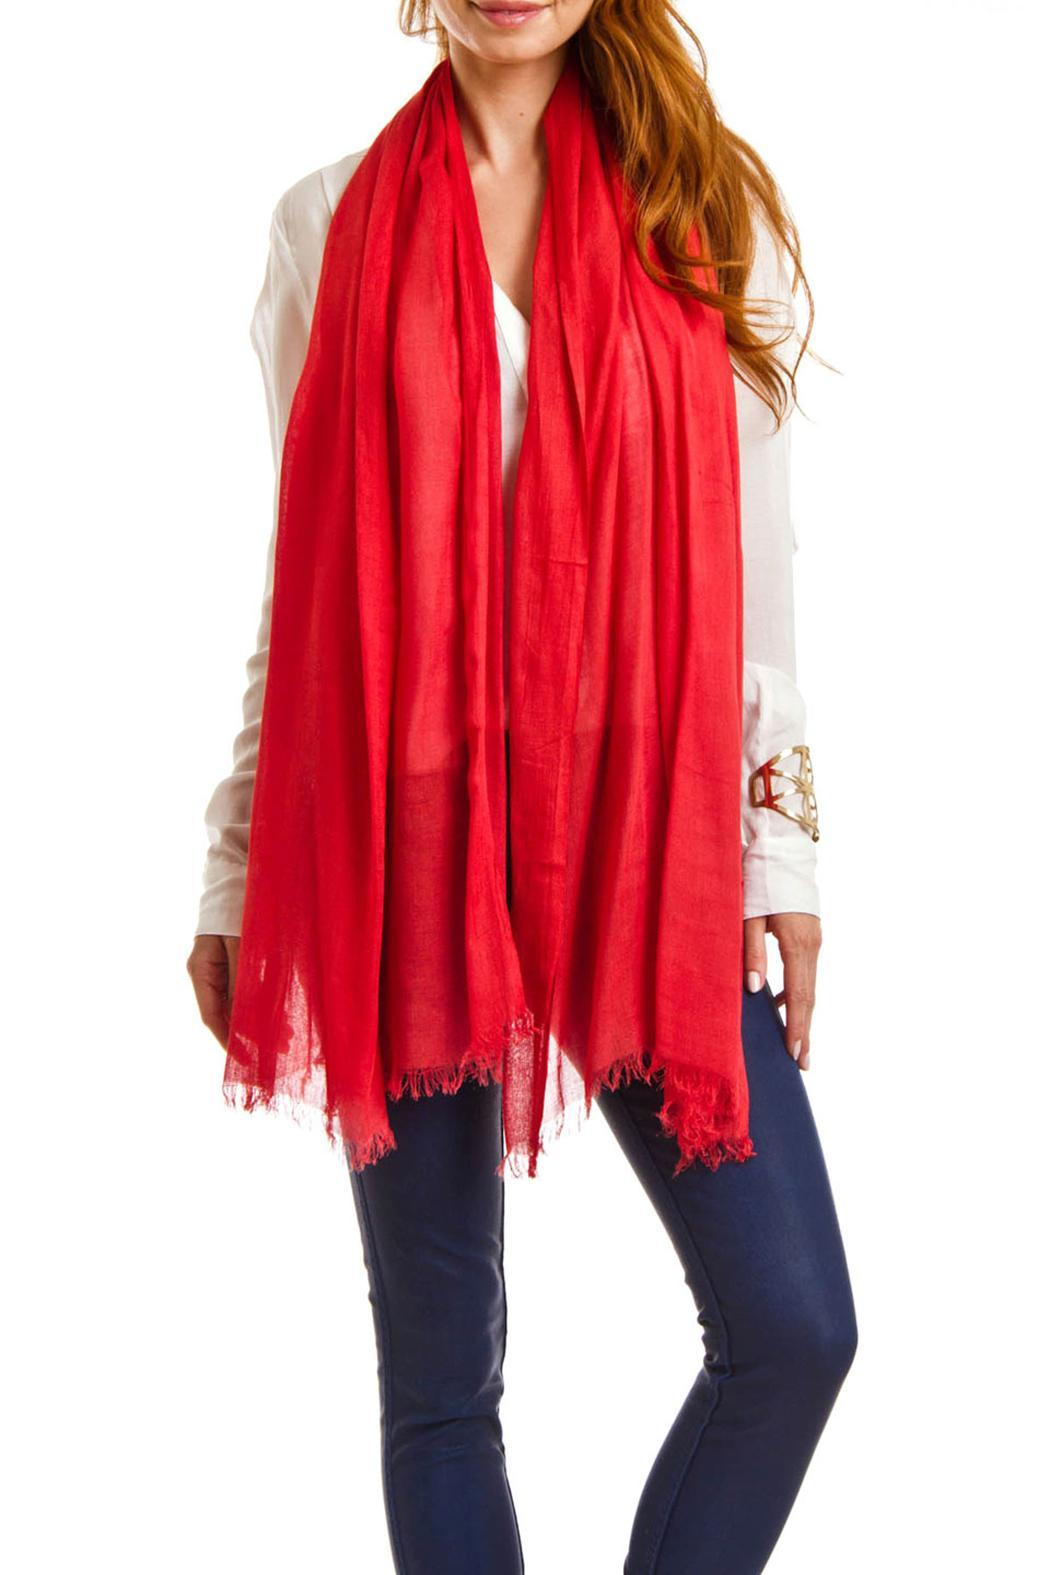 Violet Del Mar Solid Colored Scarf - Front Full Image